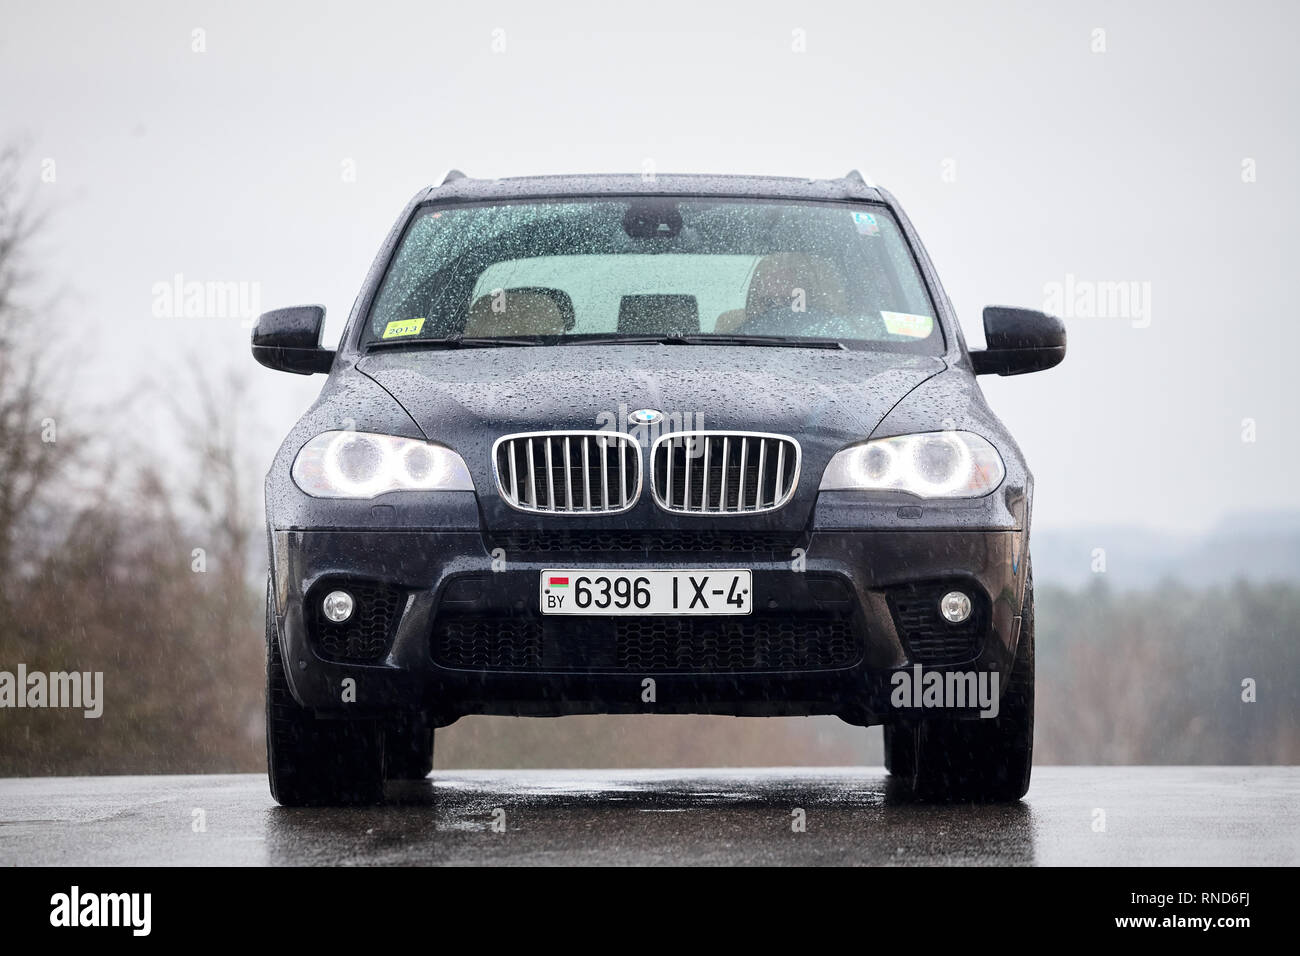 GRODNO, BELARUS - OCTOBER 2016: BMW X5 with glowing headlights standing on asphalt under rain covered with raindrops over gray rainy sky and forest ba - Stock Image